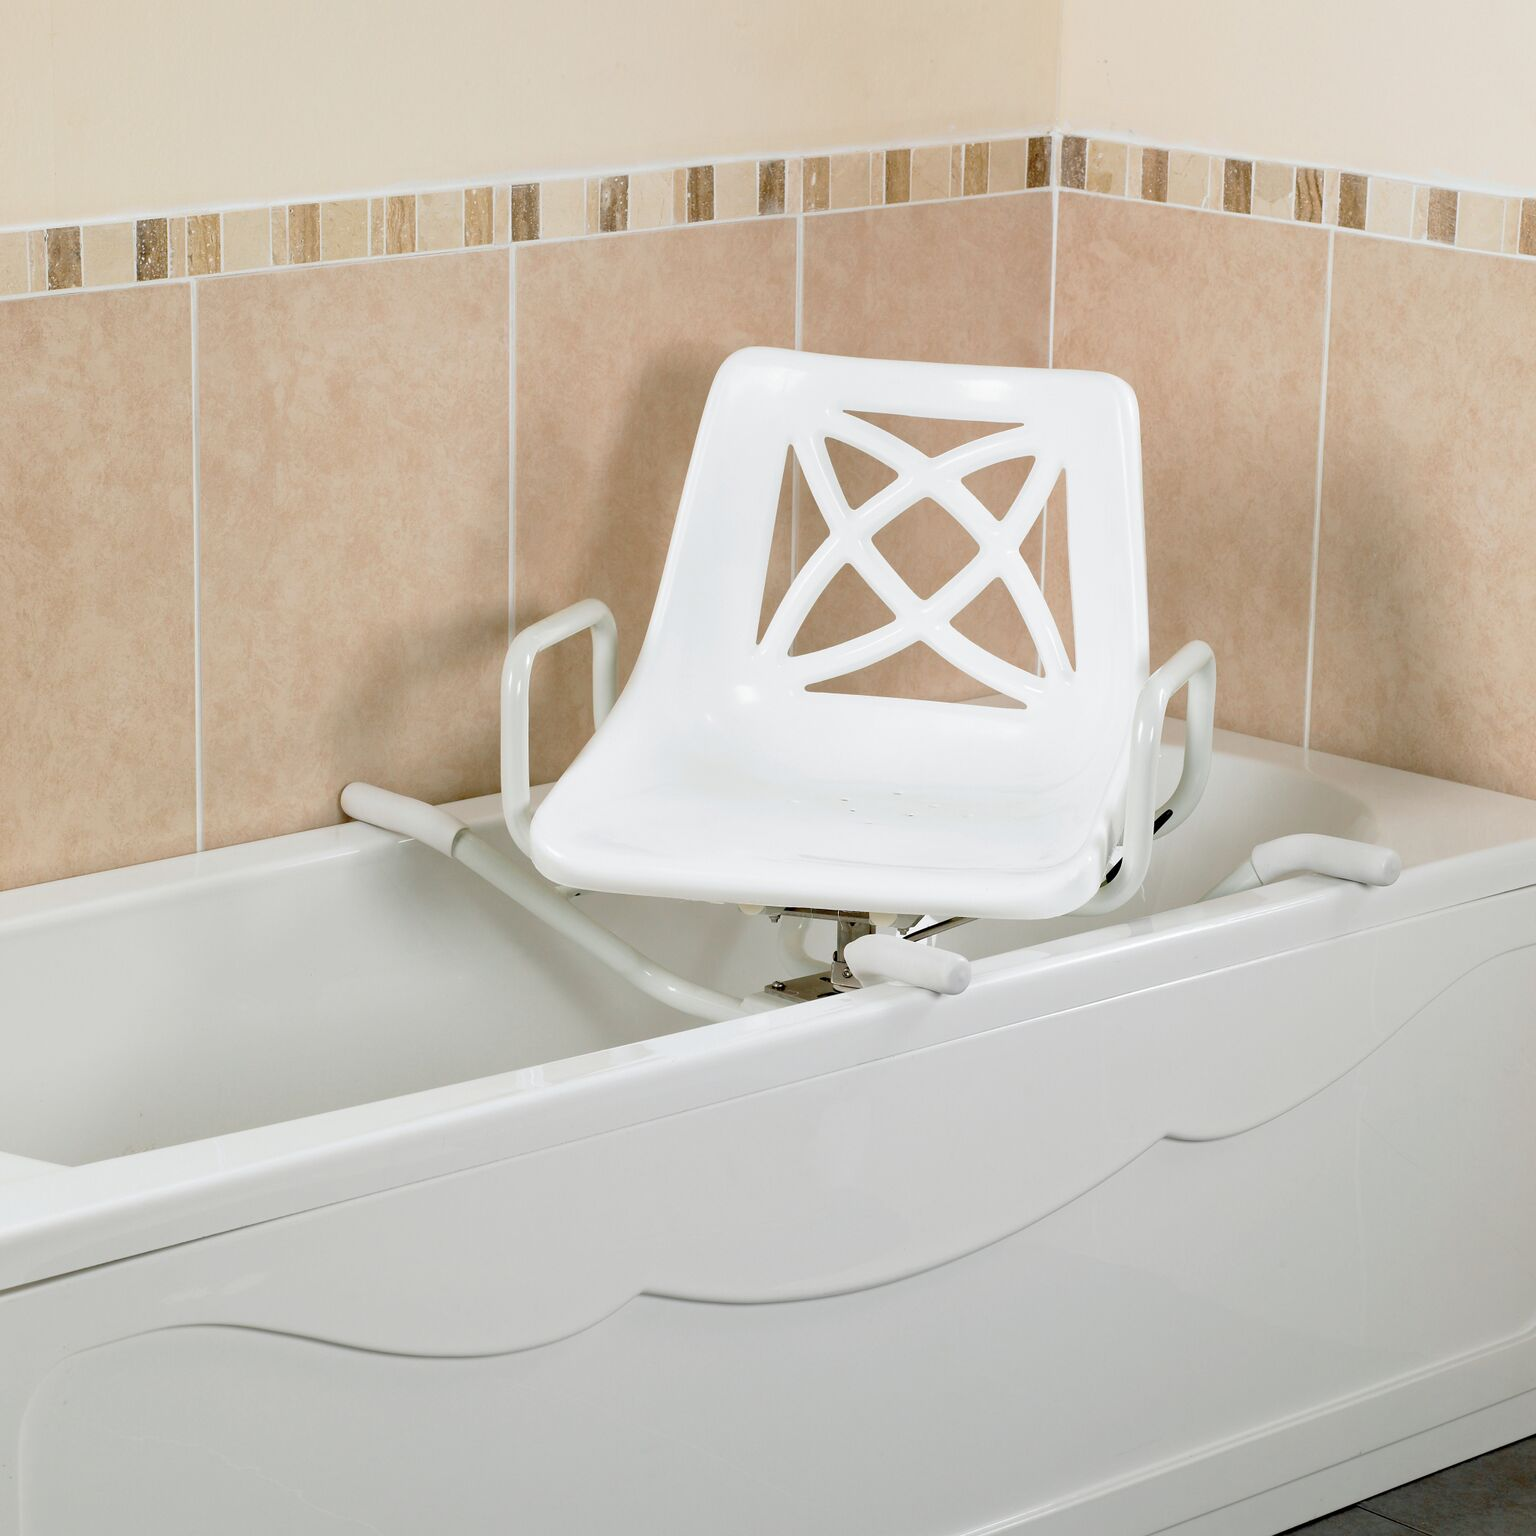 Days Swivelling Bath Seat – Buy Online – Liftability - Stairlifts ...